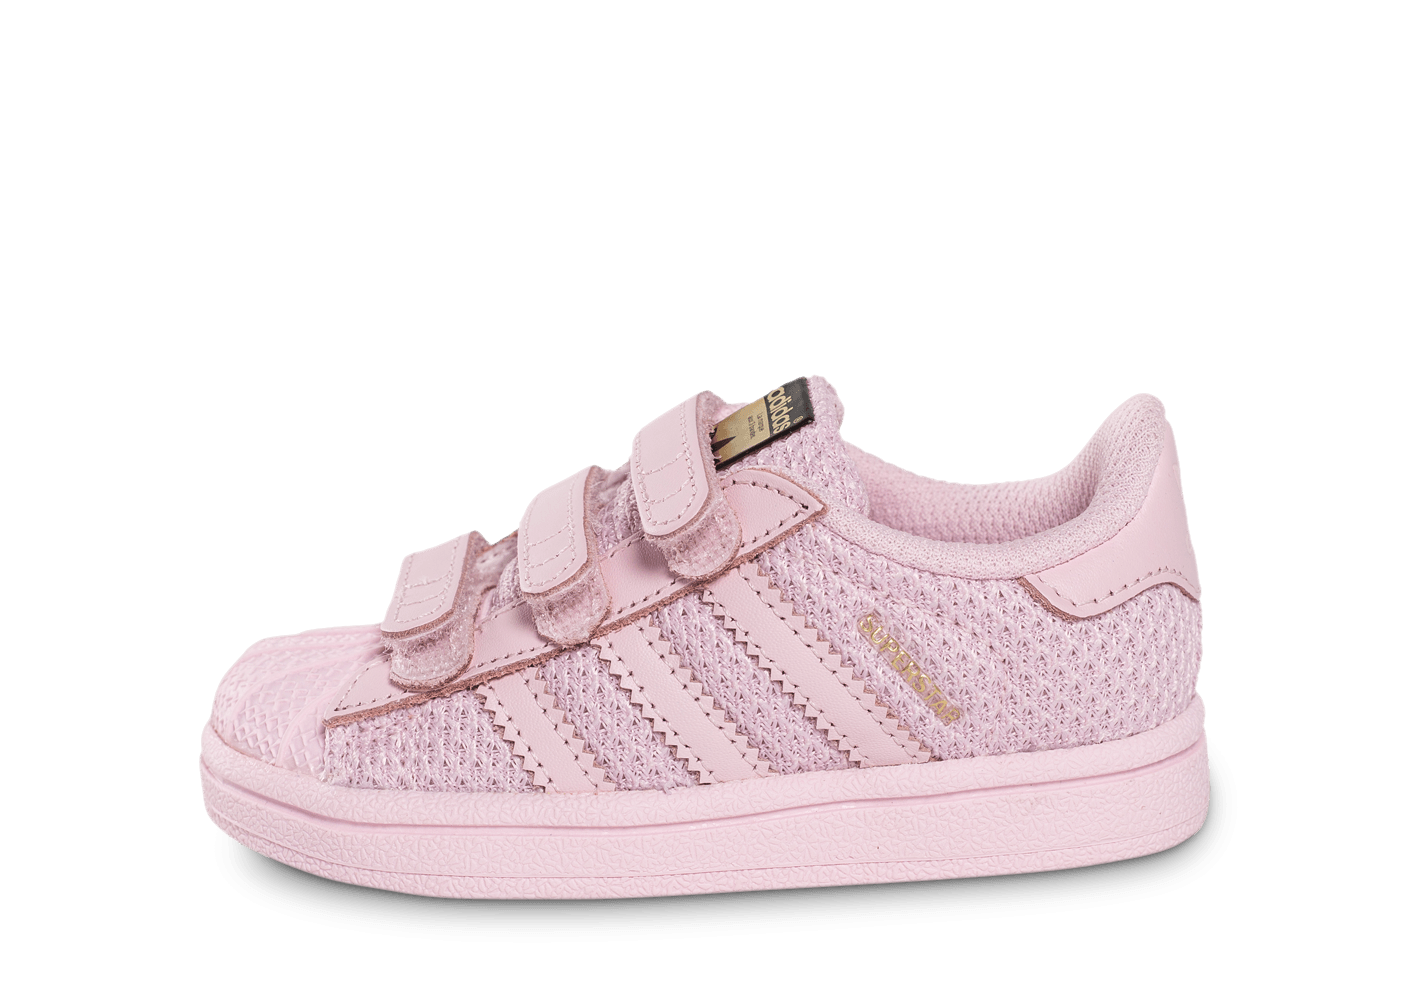 e24609a51727e Superstar Bebe Bebe Adidas Superstar Rose Superstar Adidas Bebe Bebe Rose  Rose Adidas Adidas Superstar 6gpwT